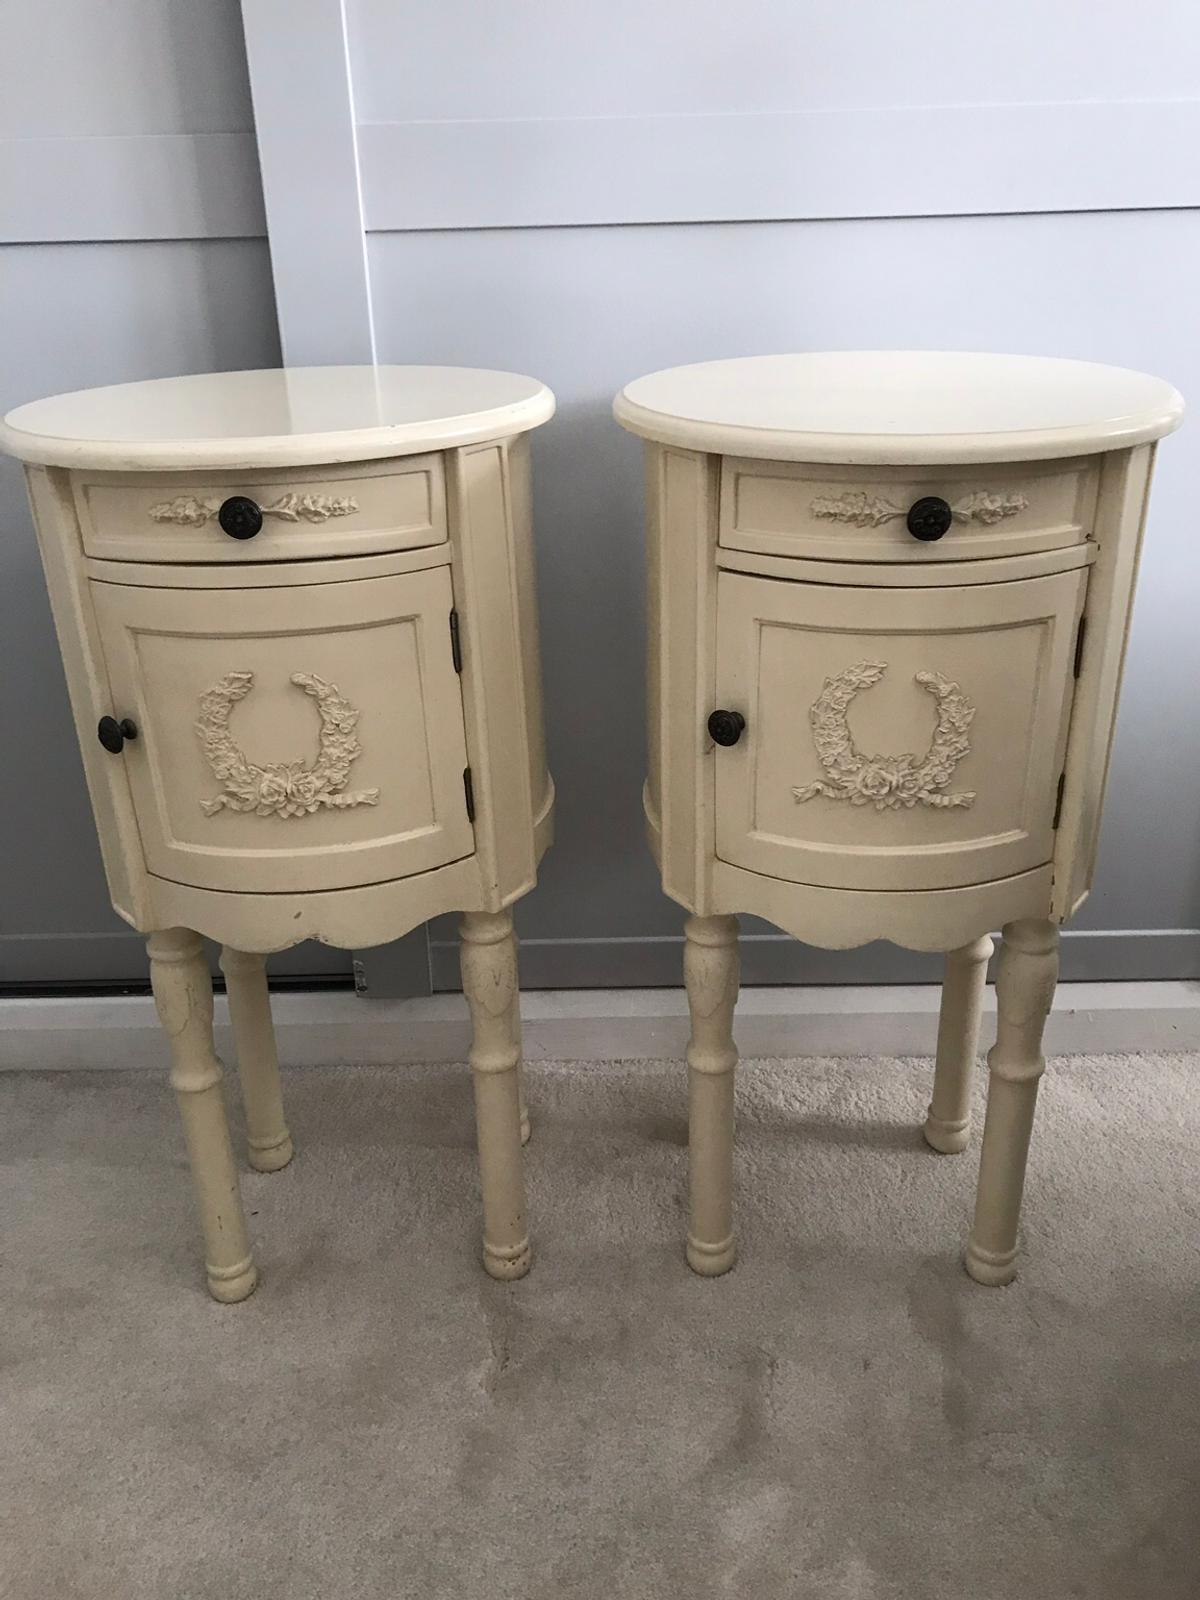 Pair Of Cream Shabby Chic Bedside Tables In Rm11 Havering For 50 00 For Sale Shpock